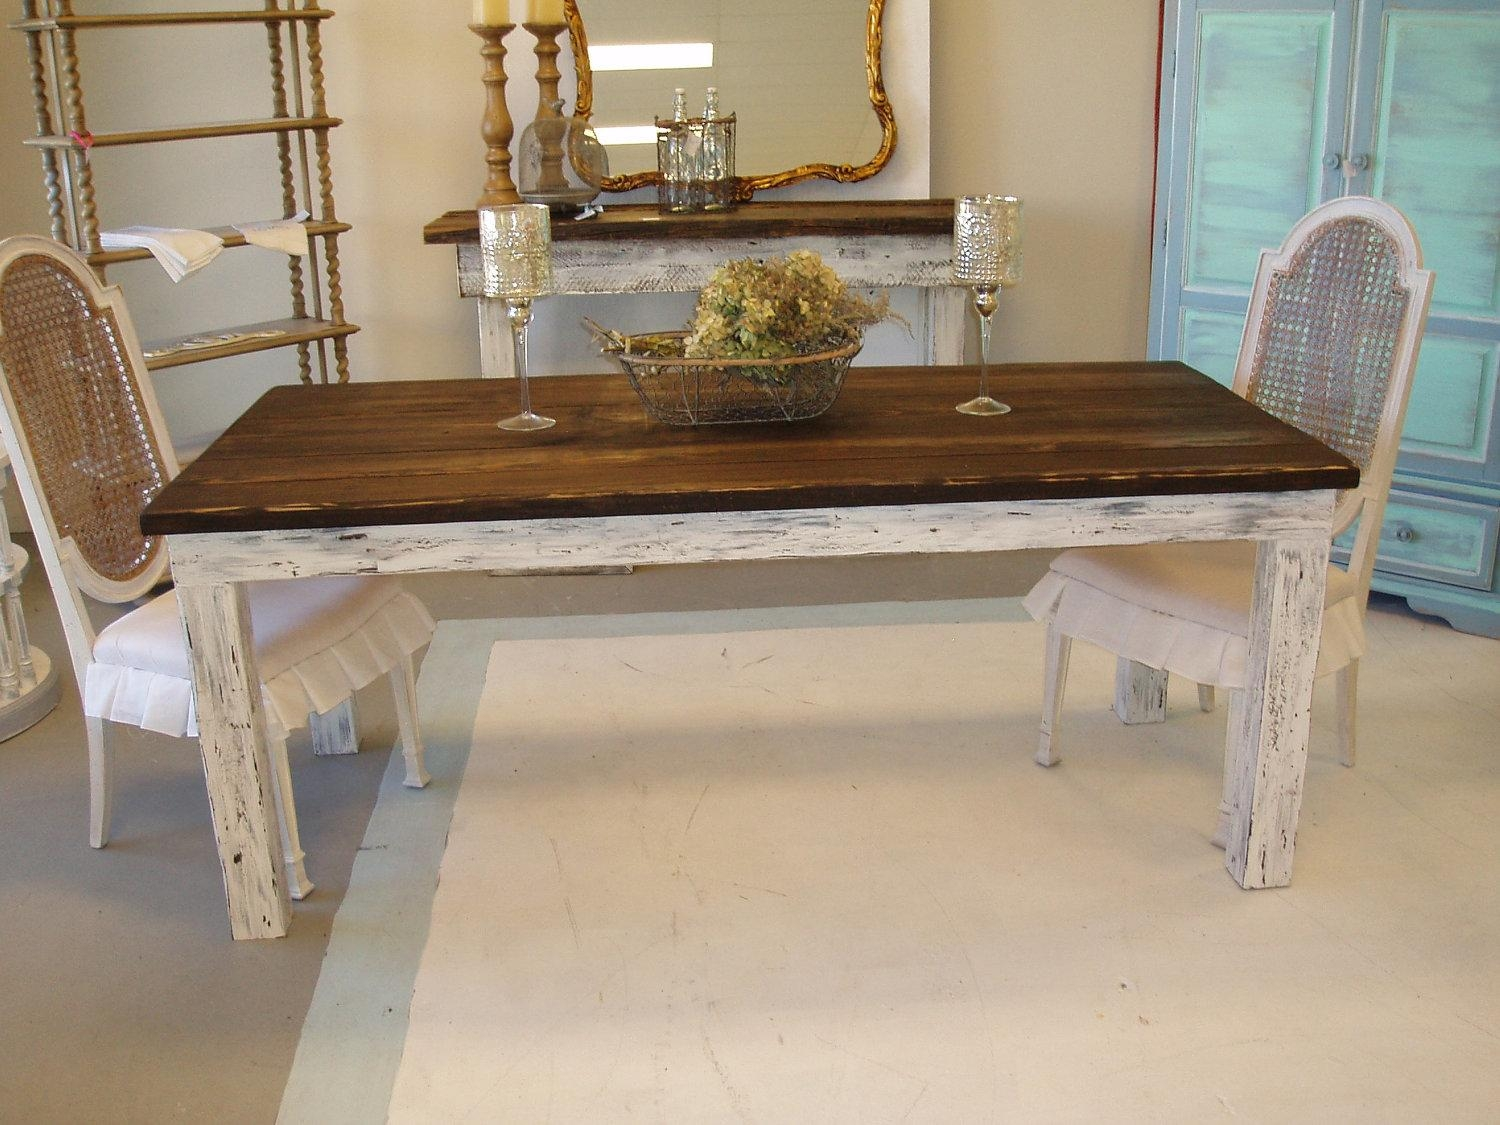 Shabby Chic Sofa Tables With Wallpapers Dual Monitor   Vercmd With Regard To Shabby Chic Sofa Tables (View 7 of 20)